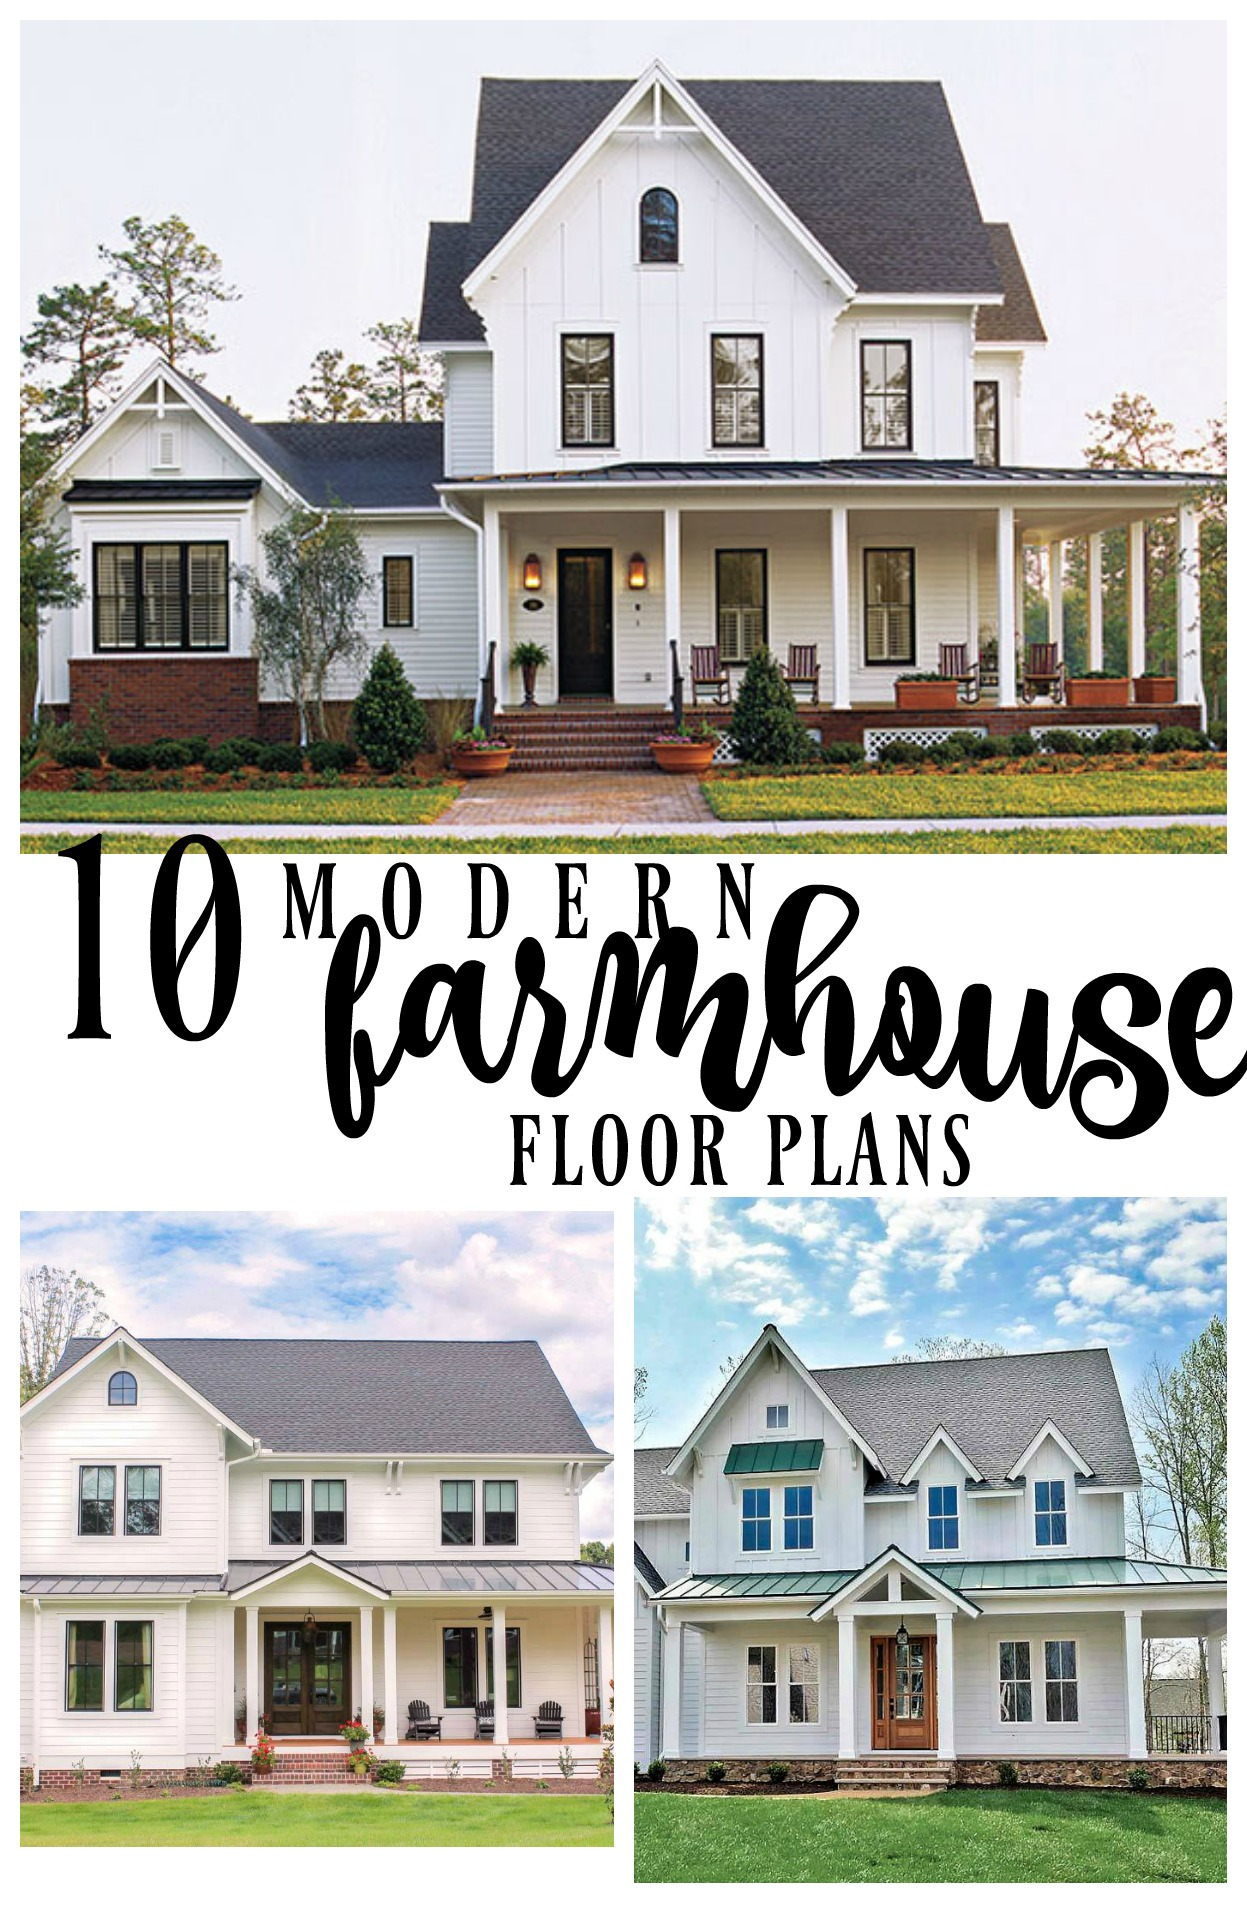 10 modern farmhouse floor plans i love rooms for rent blog